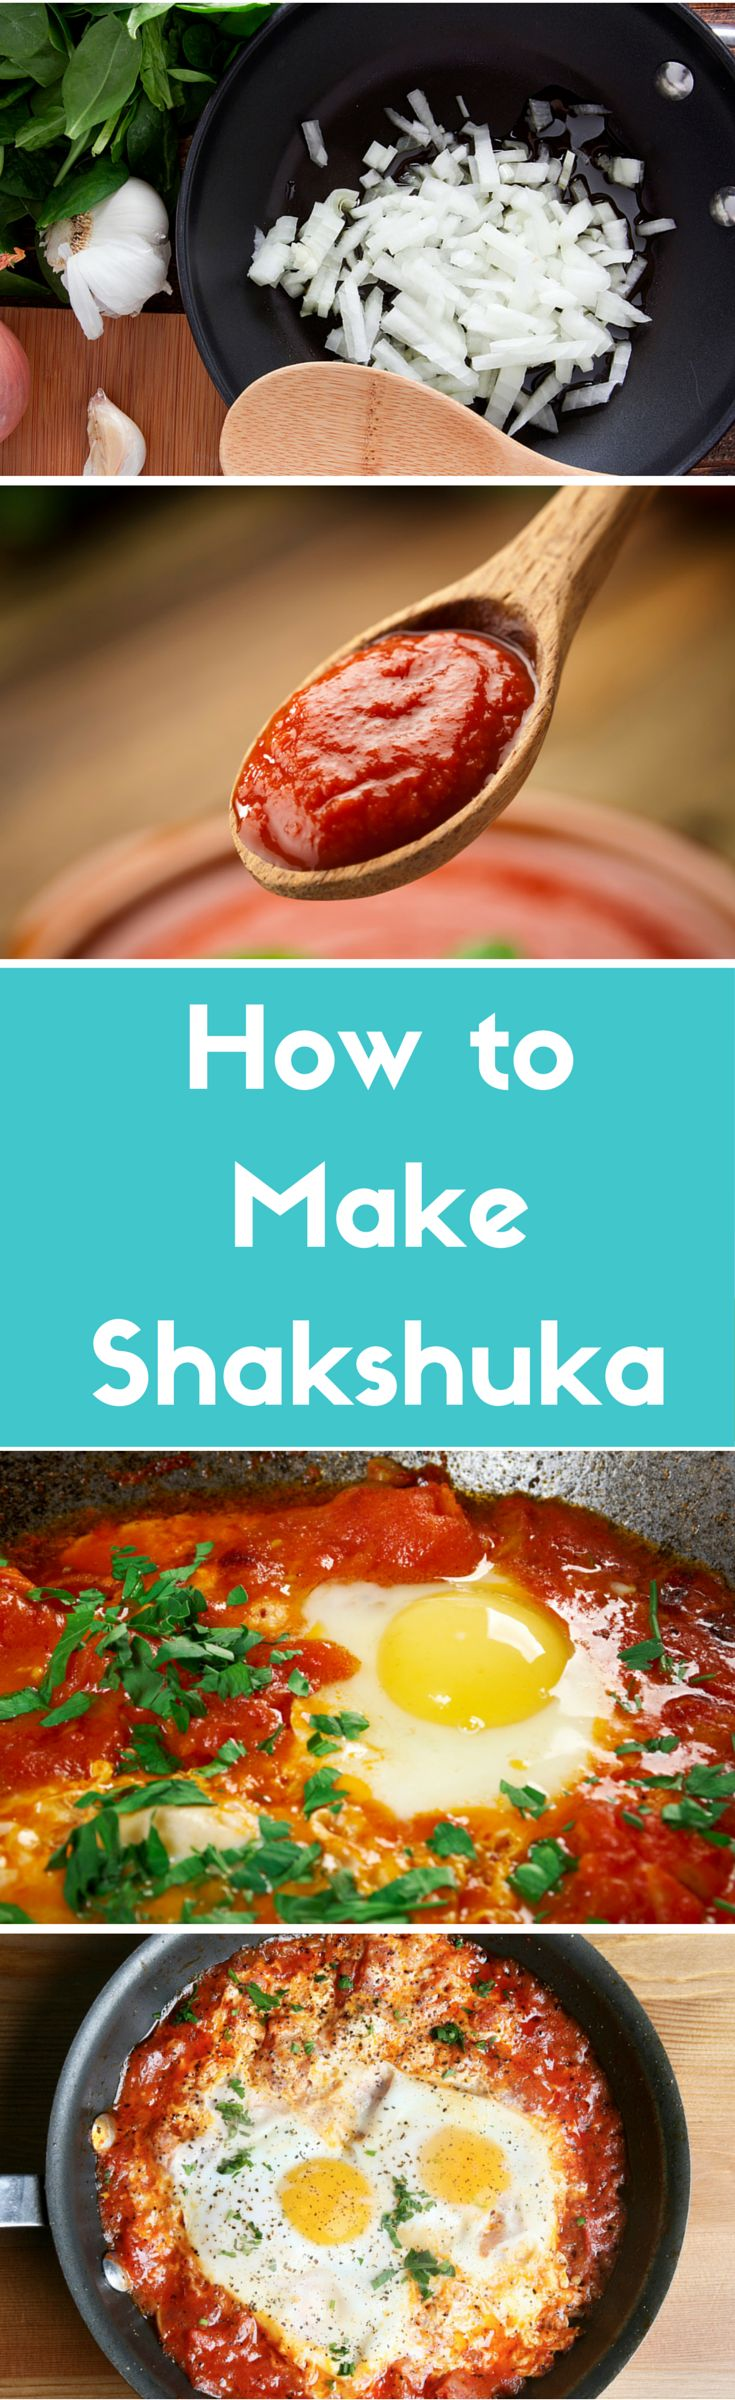 A quick guide to making shakshuka, the popular Israeli egg dish.